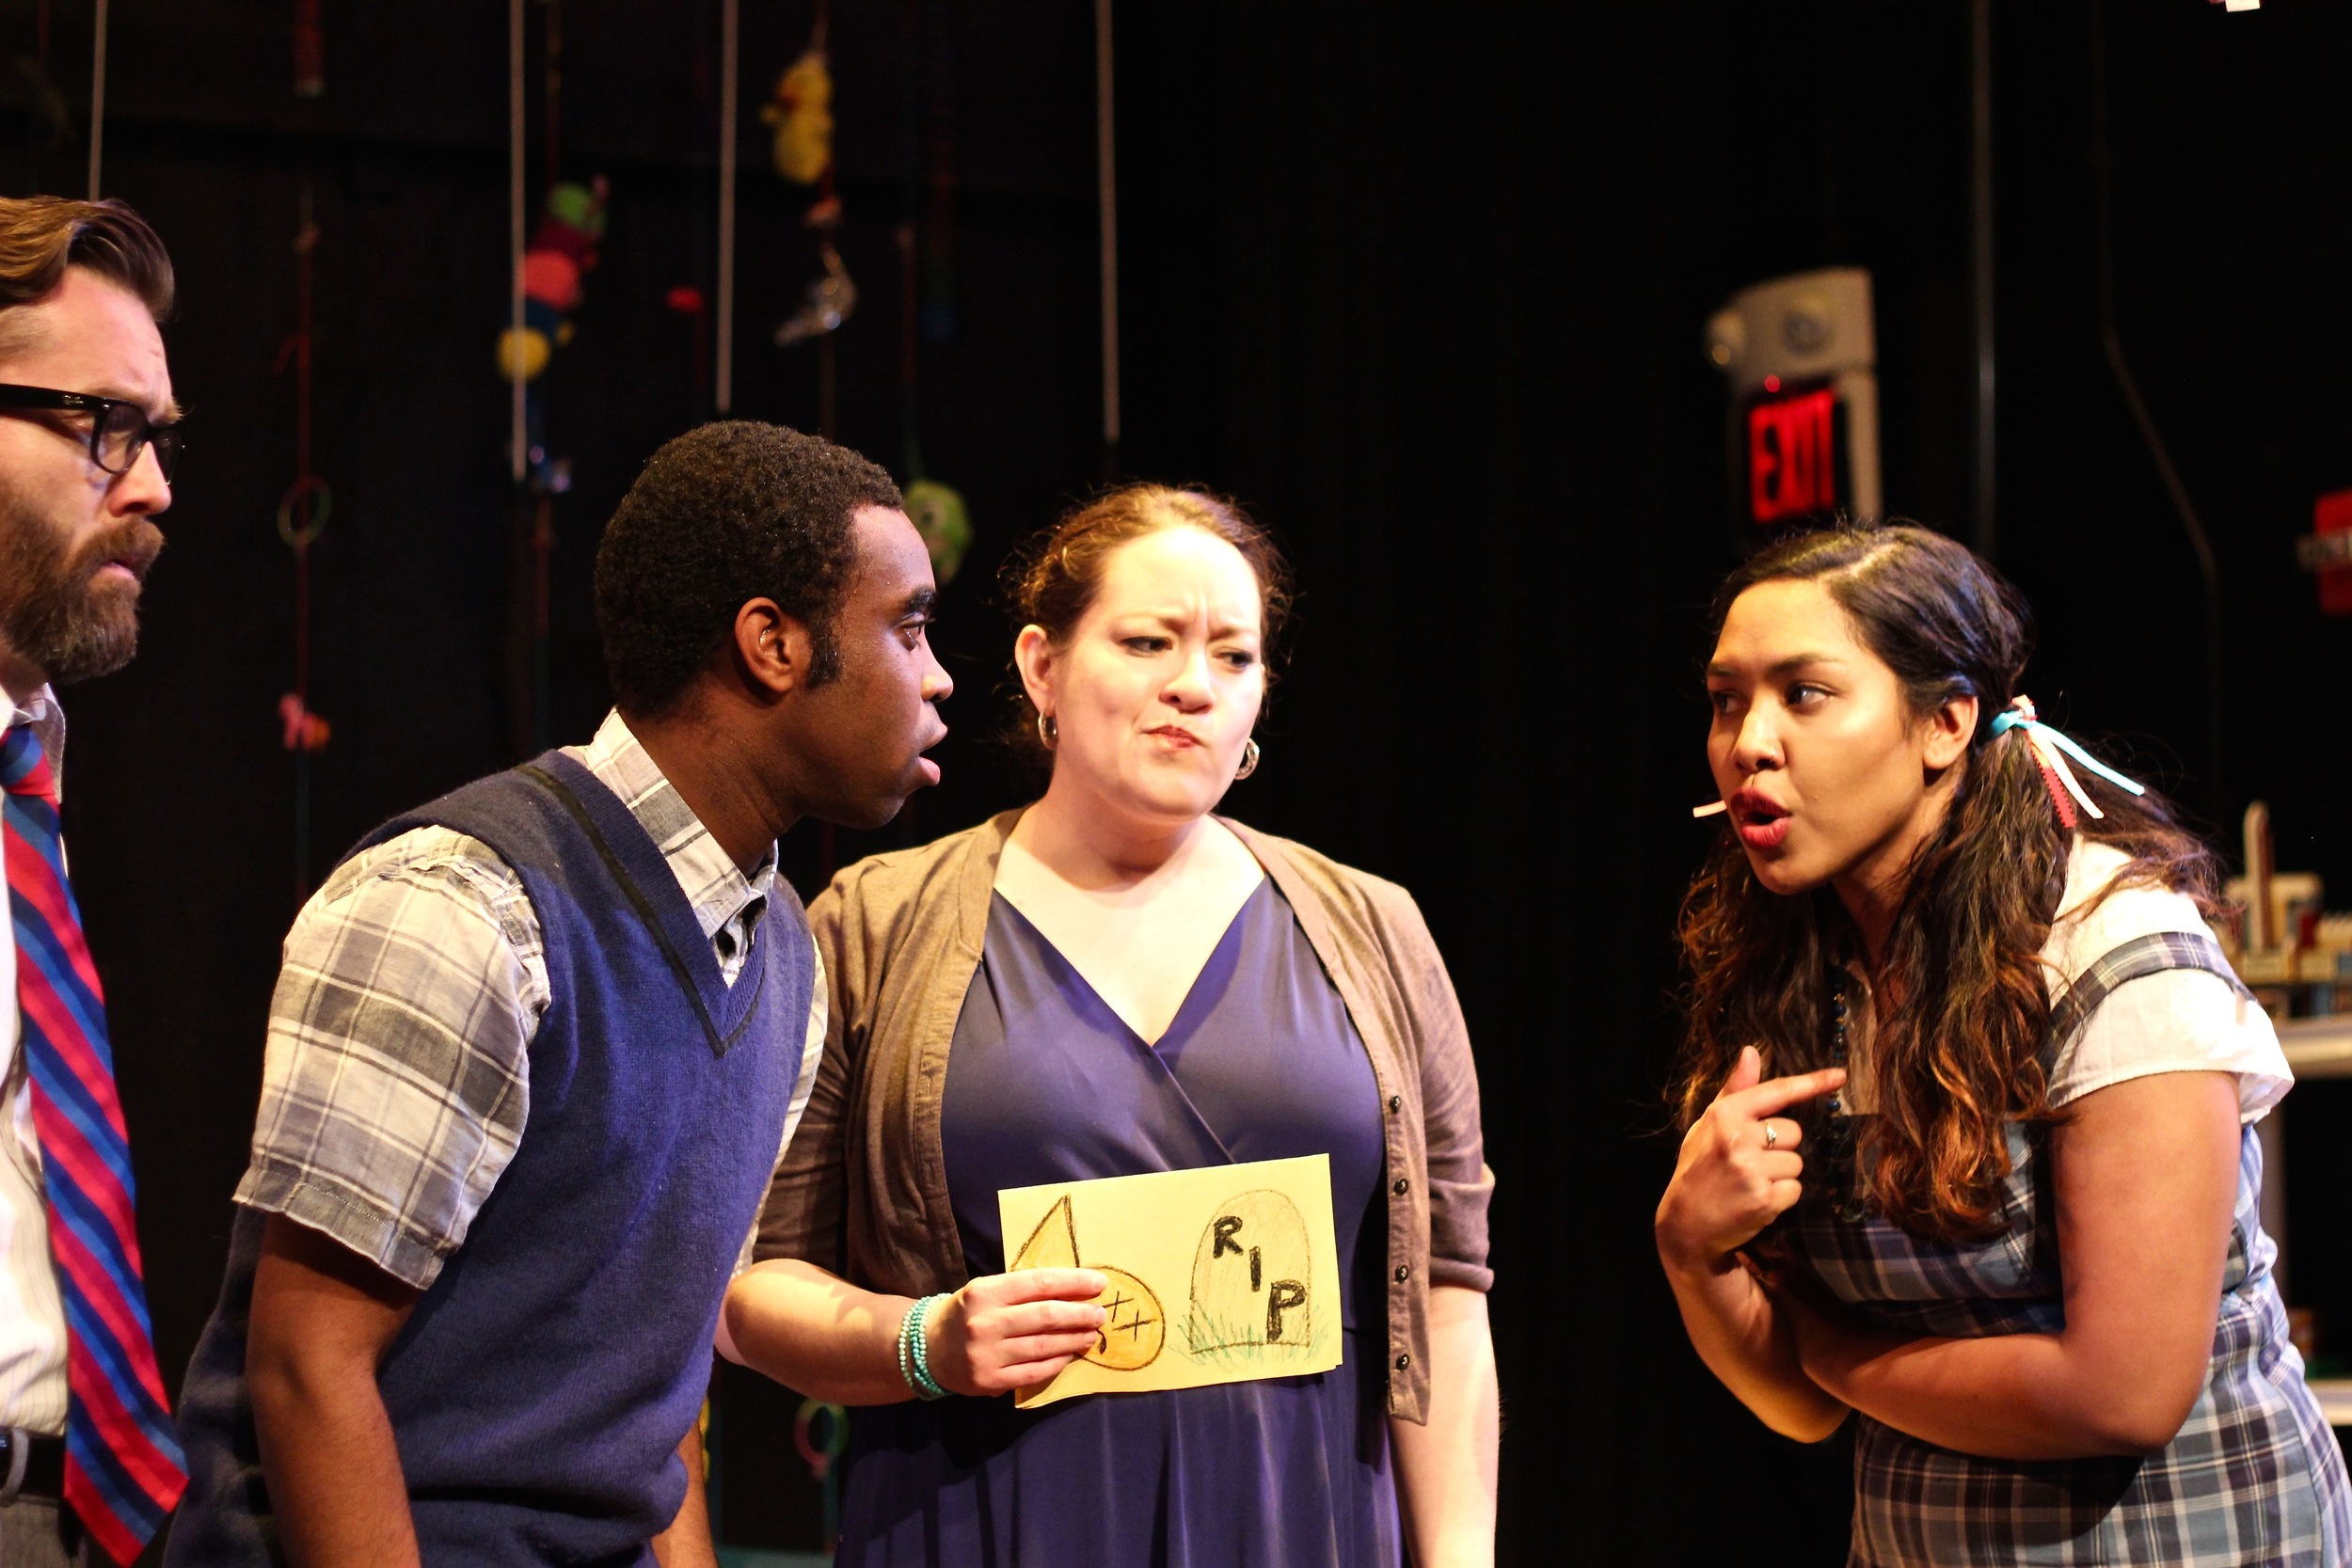 Scot Colford as Daddy,  Karina Beleno Carney as Mommy  ,  Ally Dawson as Daughtery, and   Marc Pierre as Sonny